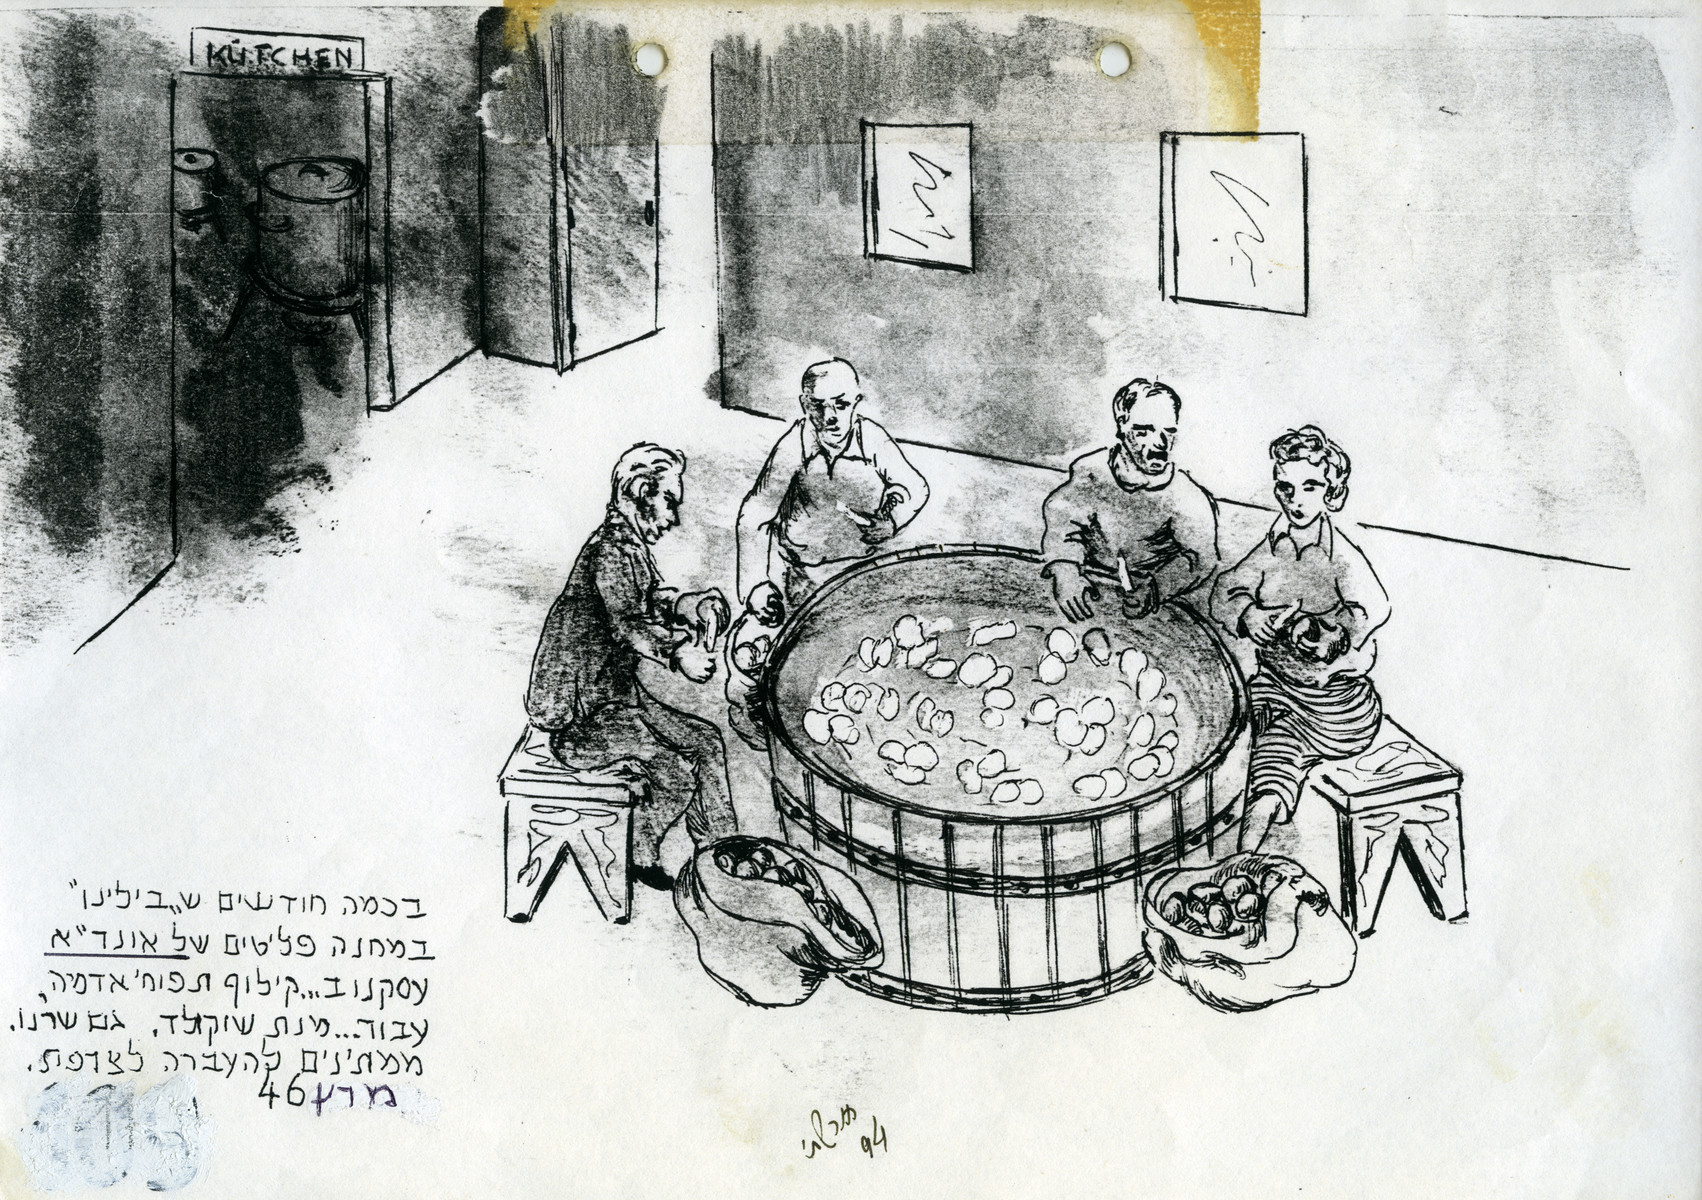 Page of a pictoral memoir drawn by the donor documenting his experiences after the Holocaust.  The drawing shows Jewish displaced persons peeling potatoes in an UNRRA camp.